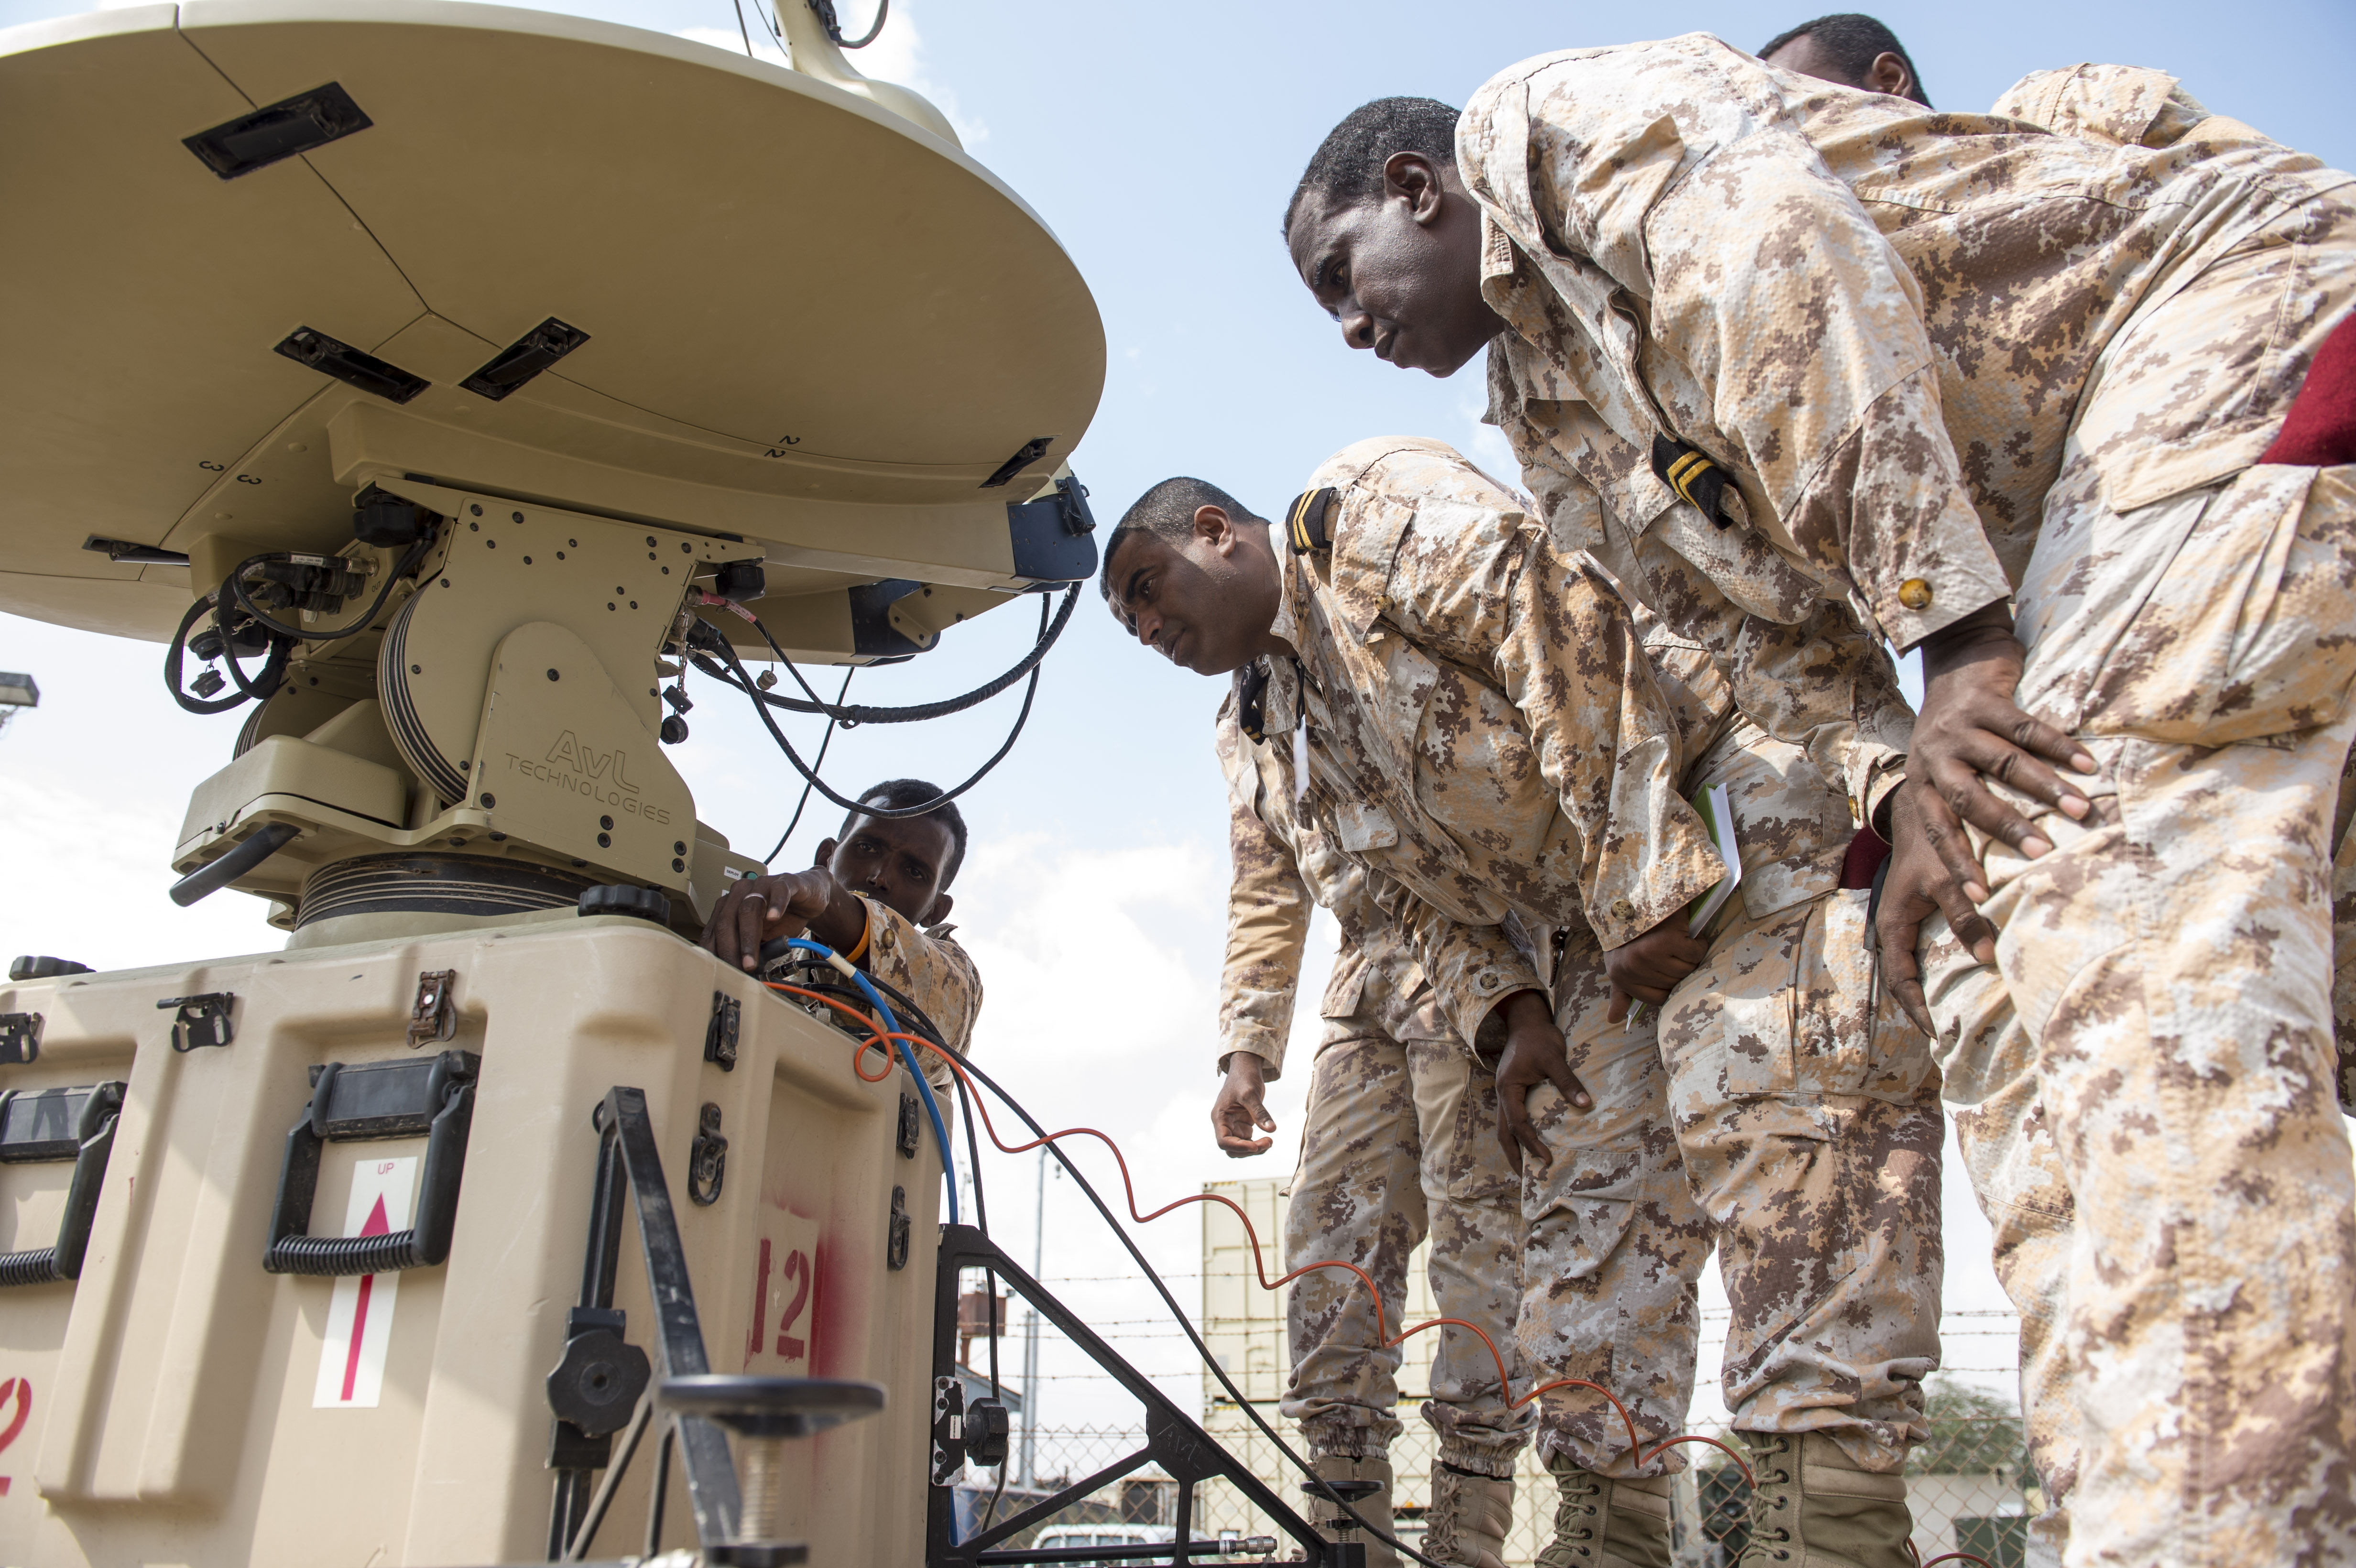 Djibouti Armed Forces (FAD) members watch as another FAD member checks the cable connections on an antenna during a military-to-military exchange course with U.S. Soldiers assigned to the Combined Joint Task Force - Horn of Africa (CJTF-HOA) Communications Directorate, at Camp Lemonnier, Djibouti, Jan. 9, 2018. Throughout a two-week period, communications experts advised Djiboutian service members on how to set up, operate, maintain, and troubleshoot network equipment to increase communication capabilities between African Union Mission in Somalia forces. (U.S. Air Force photo illustration by Staff Sgt. Timothy Moore)